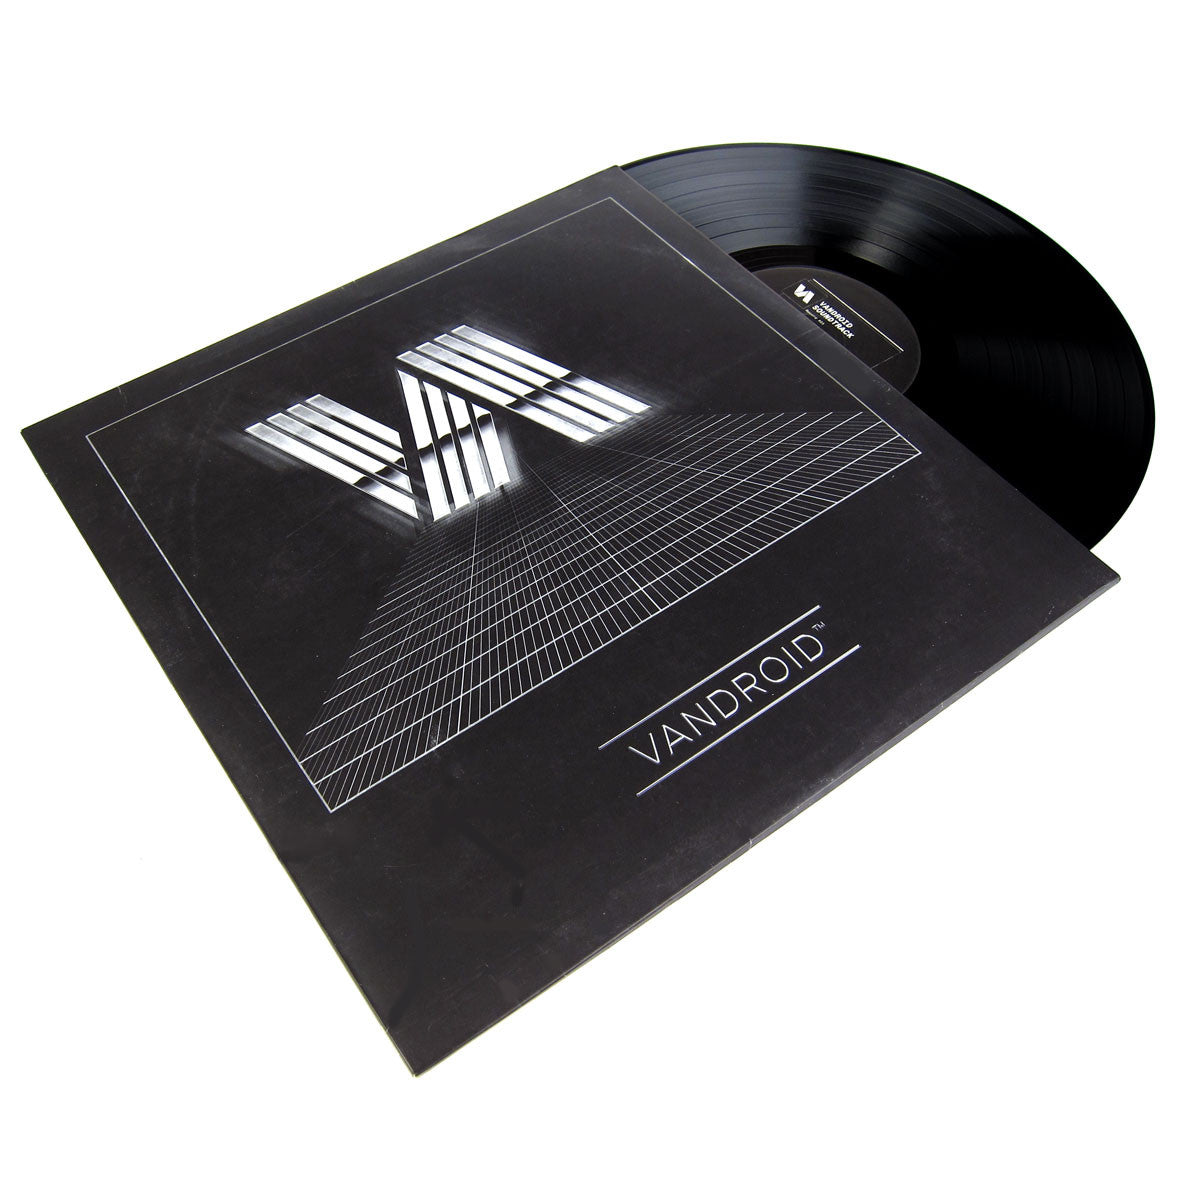 Ed Banger Records: Vandroid - The Original Comic Book Series Soundtrack Vinyl 2LP